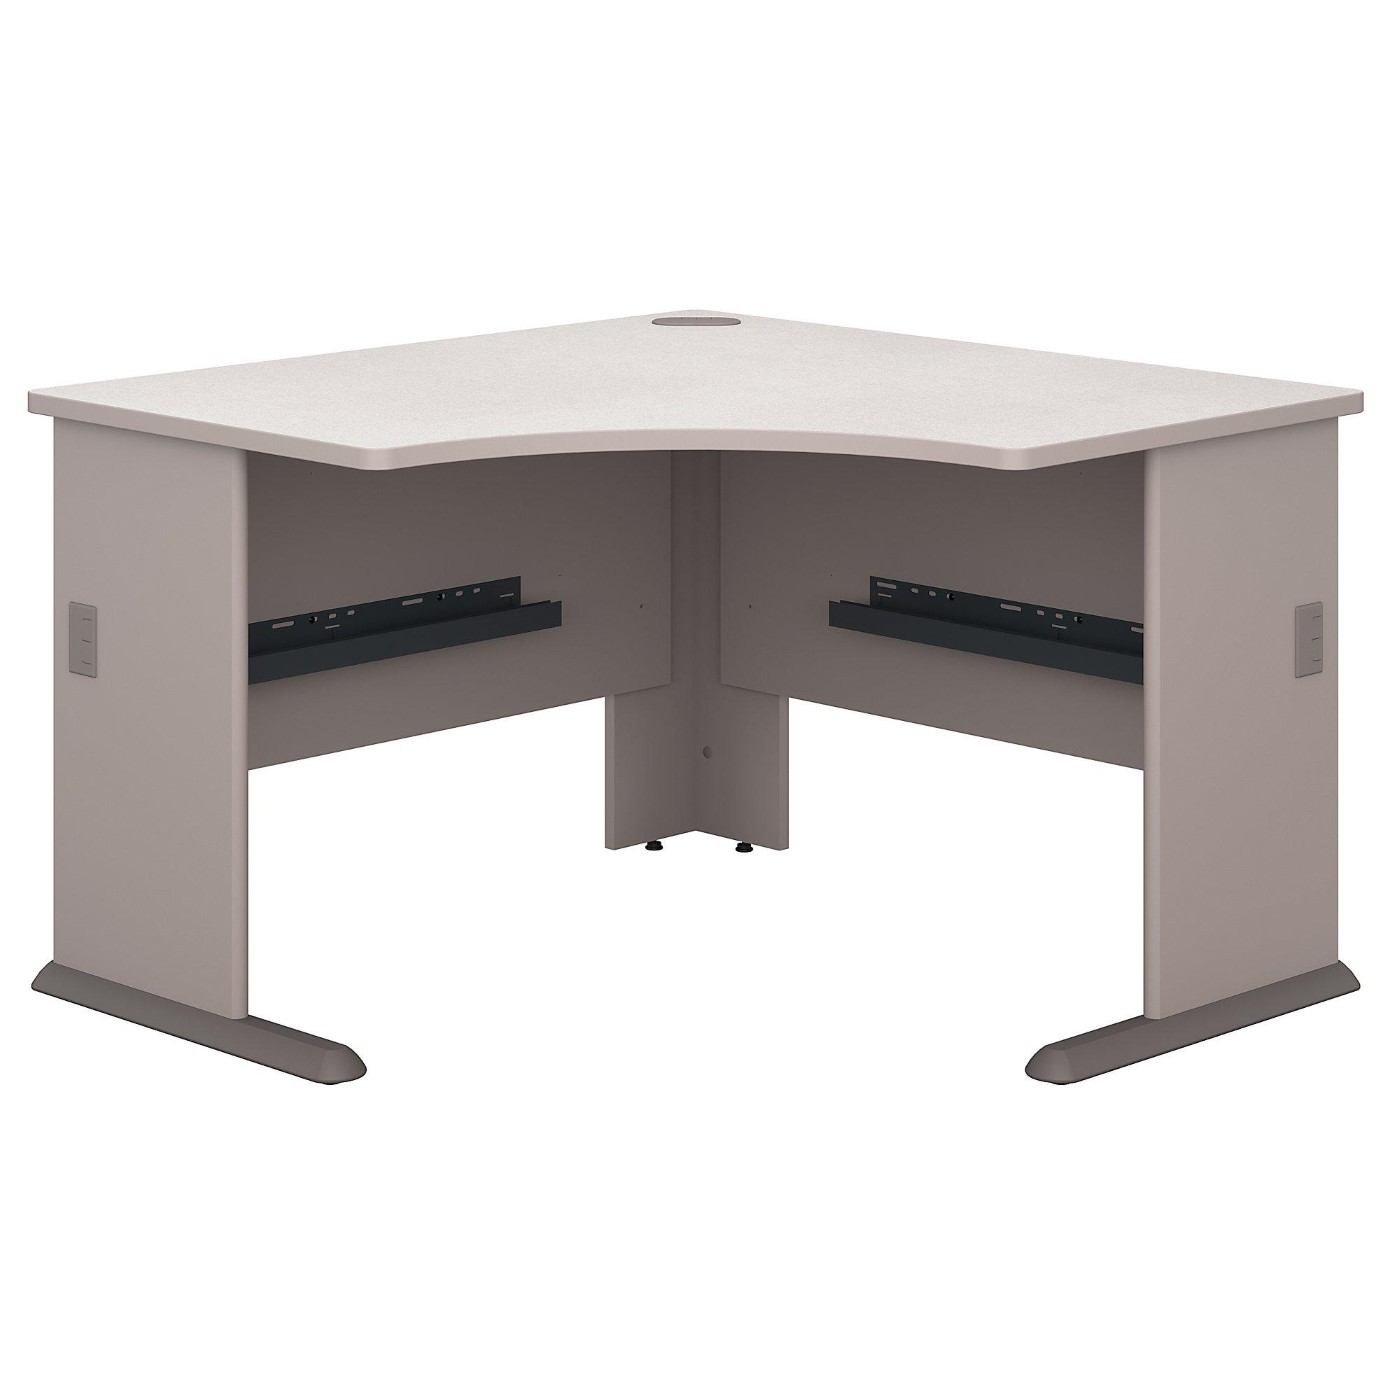 <font color=#c60><b>BUSH BUSINESS FURNITURE SERIES A 48W CORNER DESK. FREE SHIPPING</font></b></font></b>